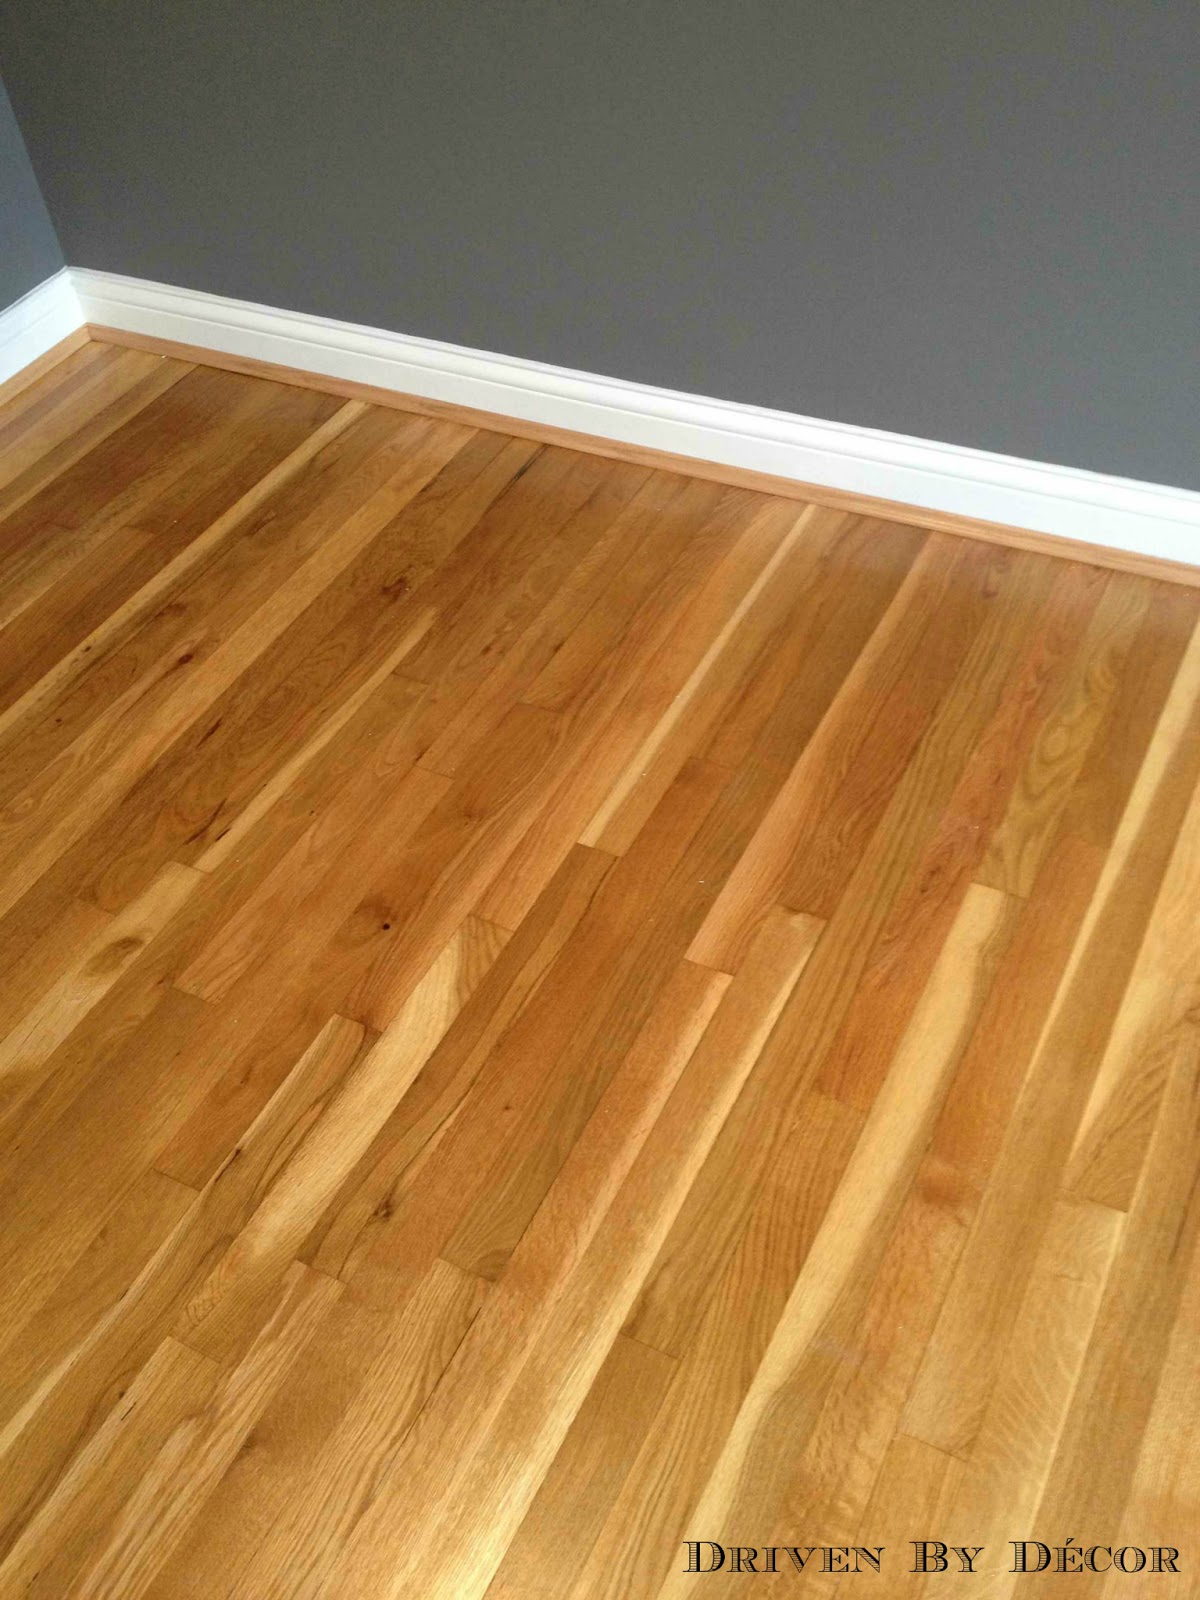 This Is The Fourth Time That Weu0027ve Had Hardwood Floors Refinished In Our  House U2013 It Would Have Been So Much Easier And Less Expensive To Have Done  All Of ...